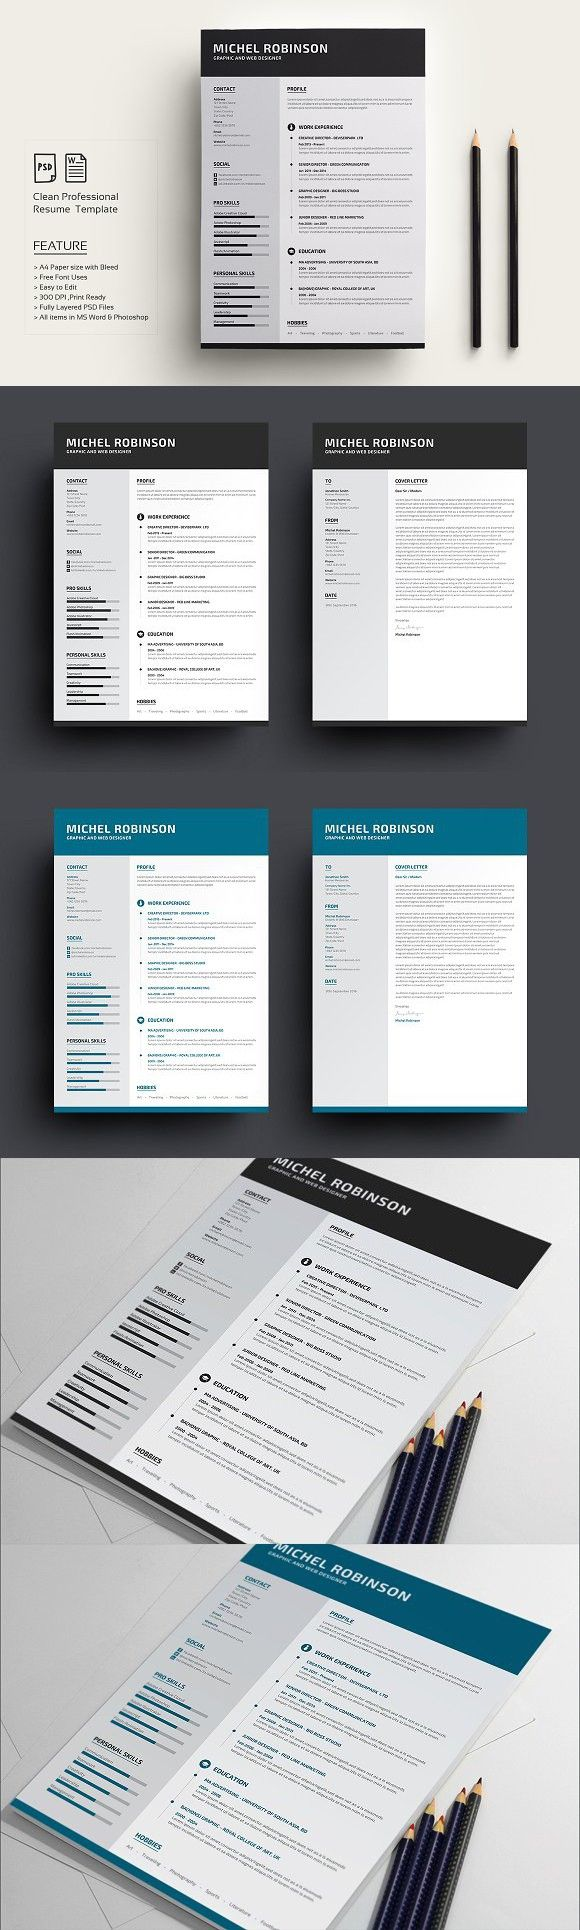 Nj Resume Writing Service Resume Writing Services For All Hello Resume Wordpress Theme Perfect Resume 2500